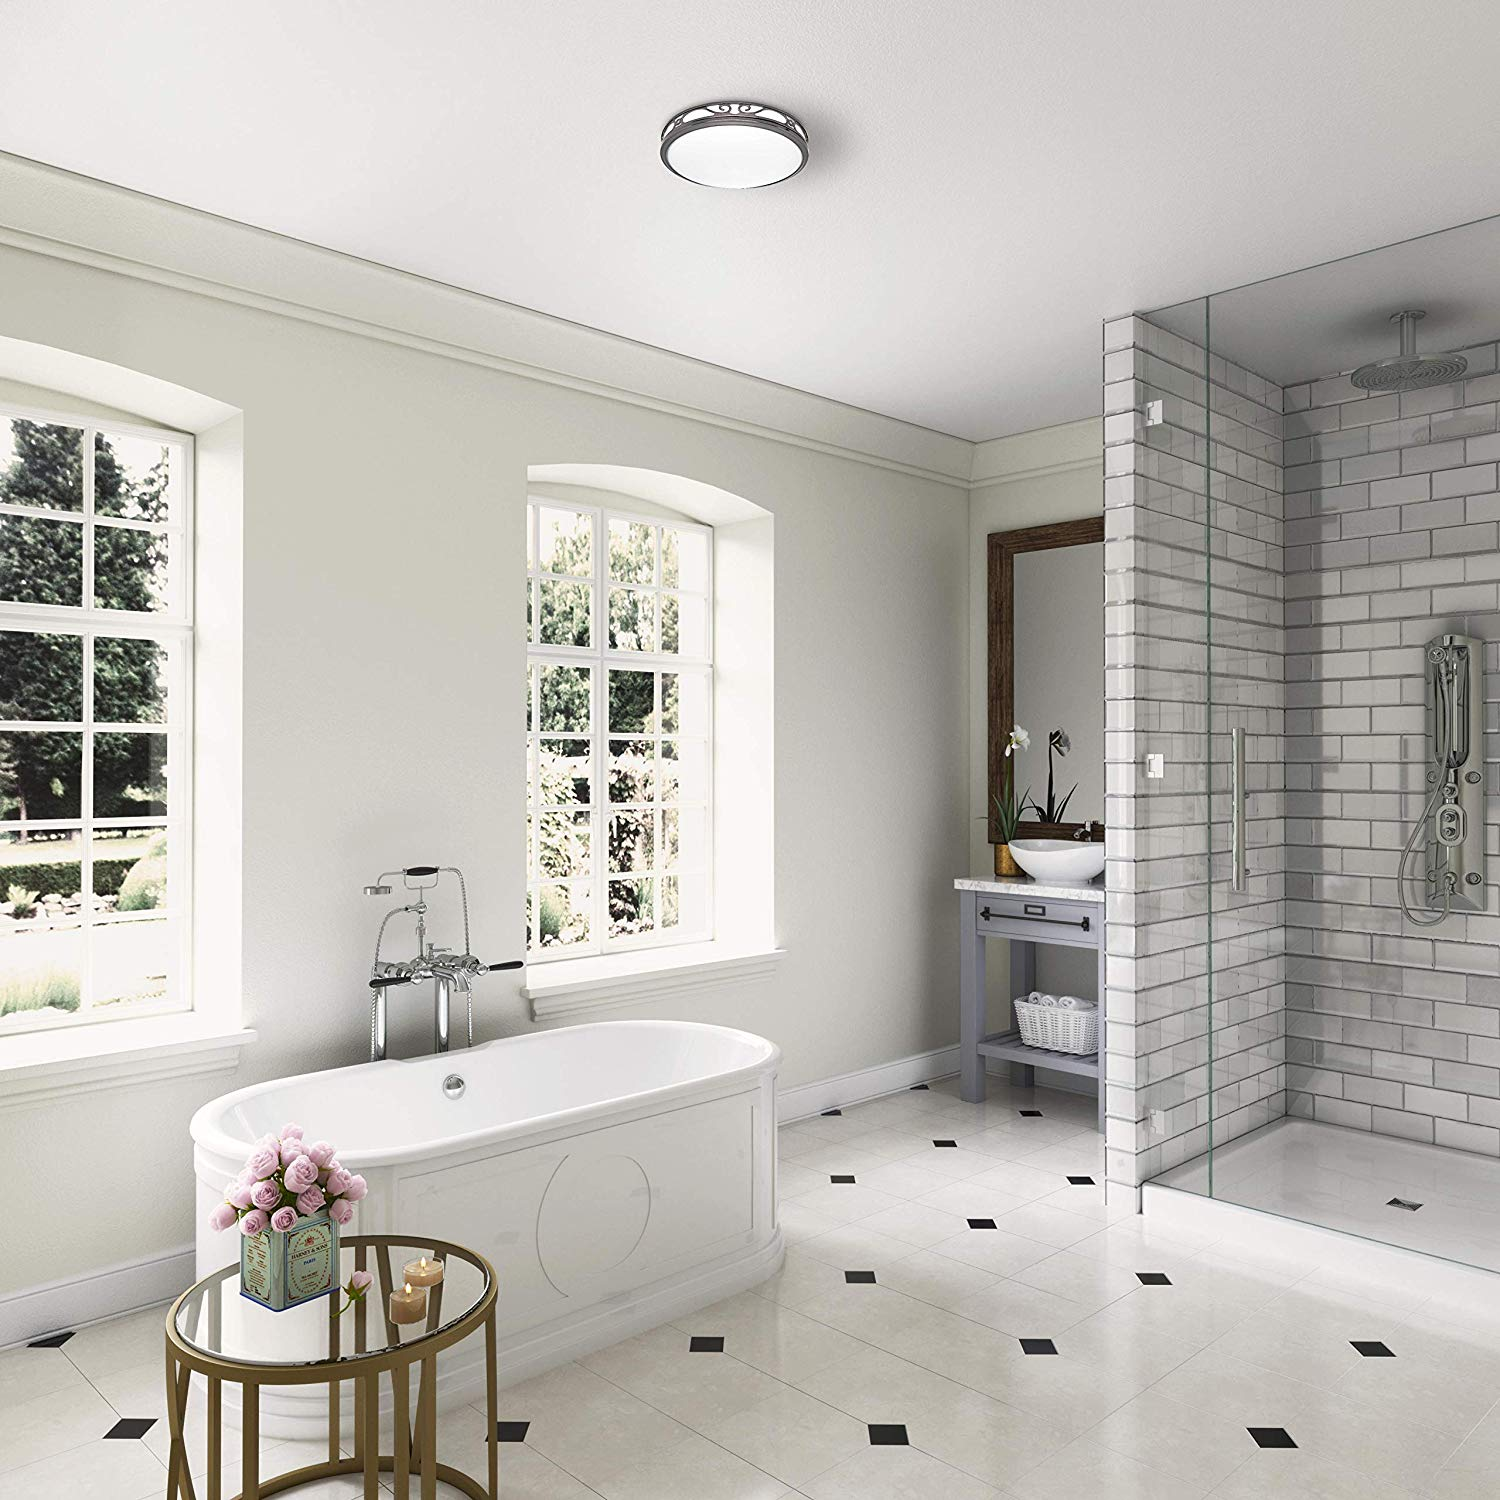 Best Bathroom Exhaust Fans with Humidity Sensors Worth the Money